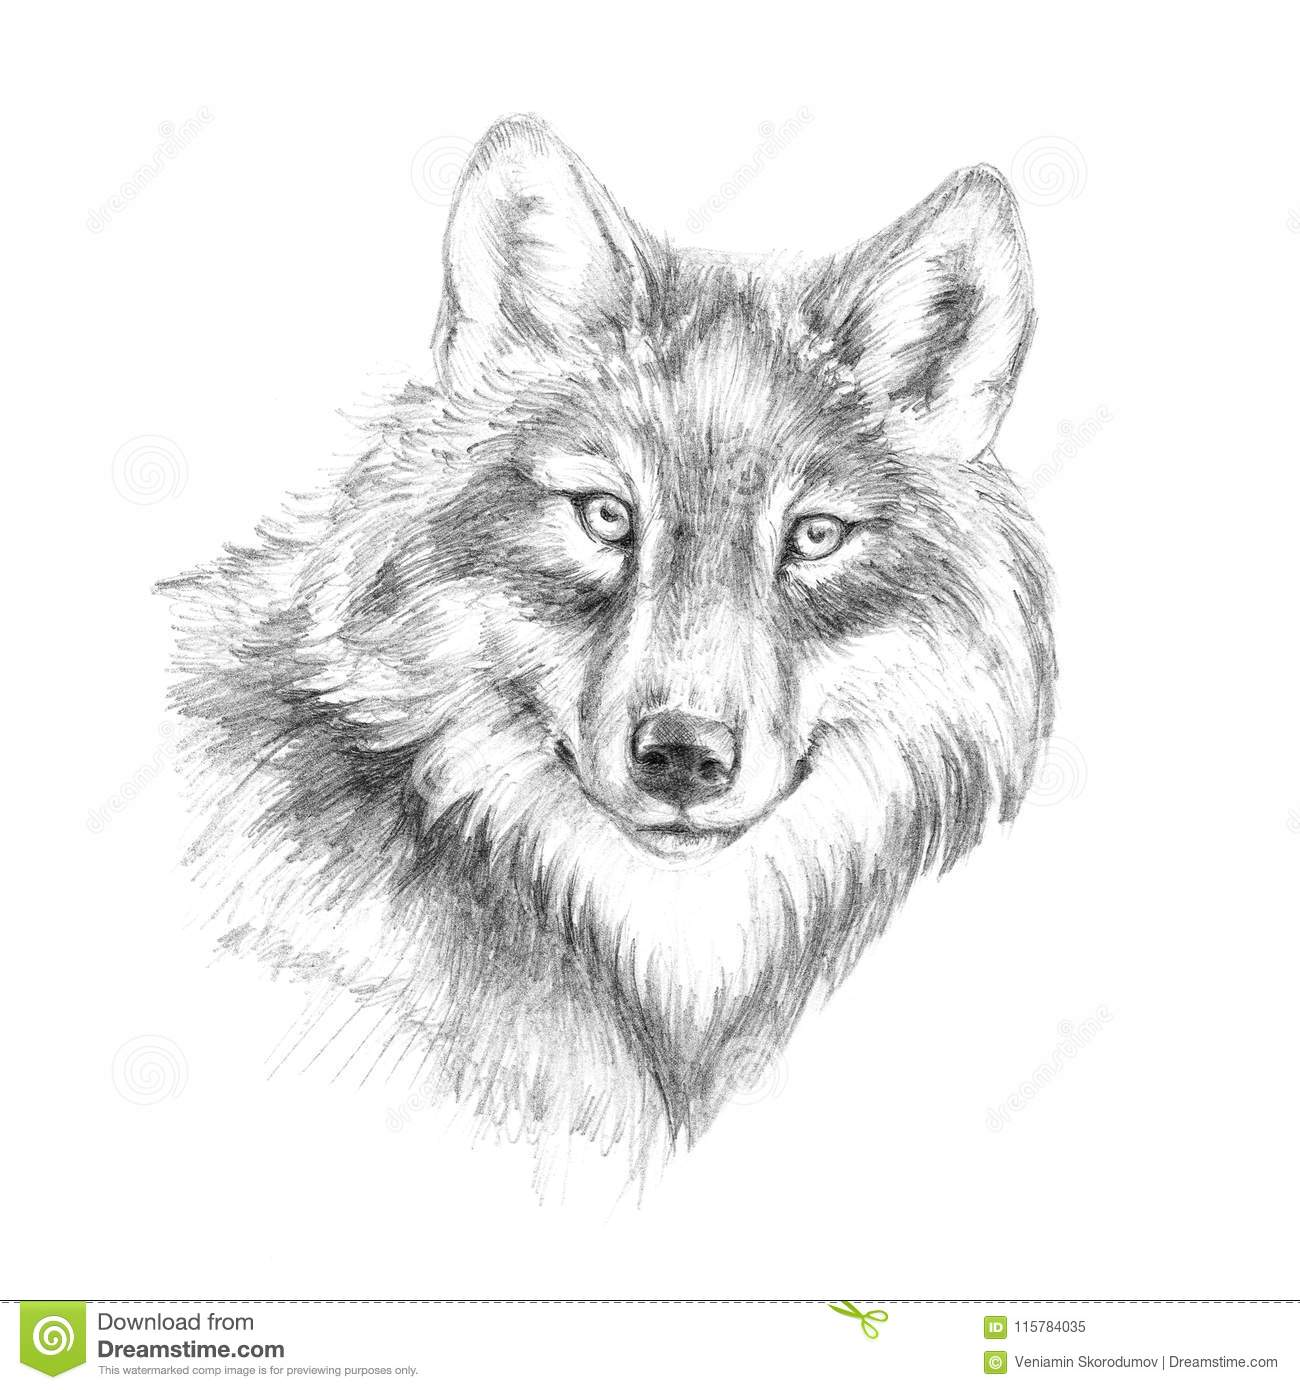 Sketch graphics head of a wolf of black and white pen graphics